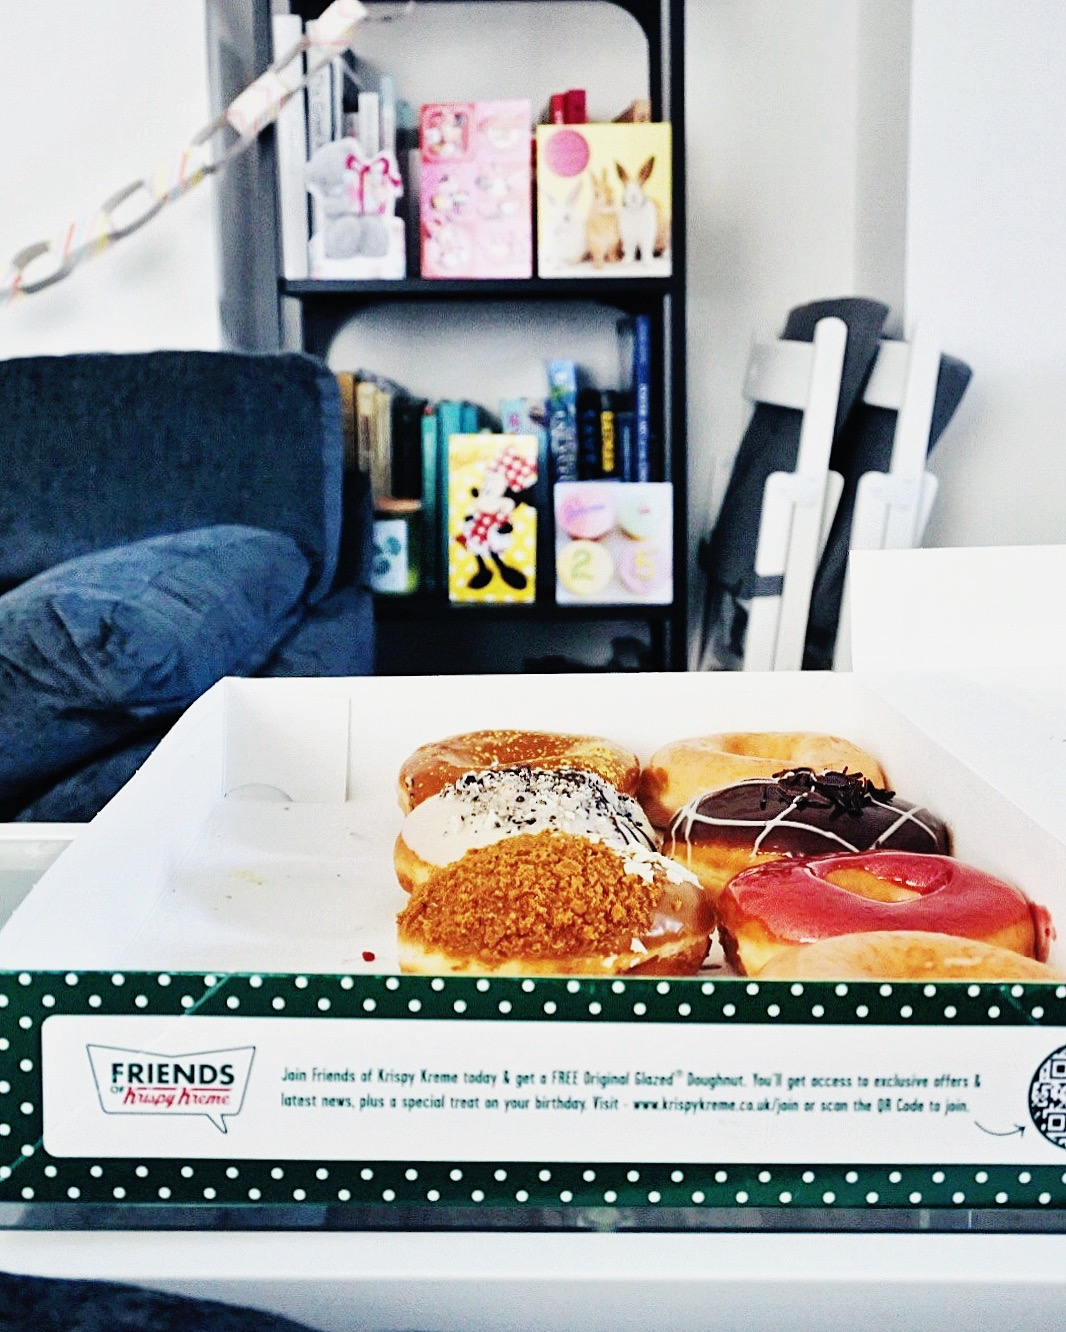 Krispy Kreme donut tray with bookshelf and birthday cards in the background.